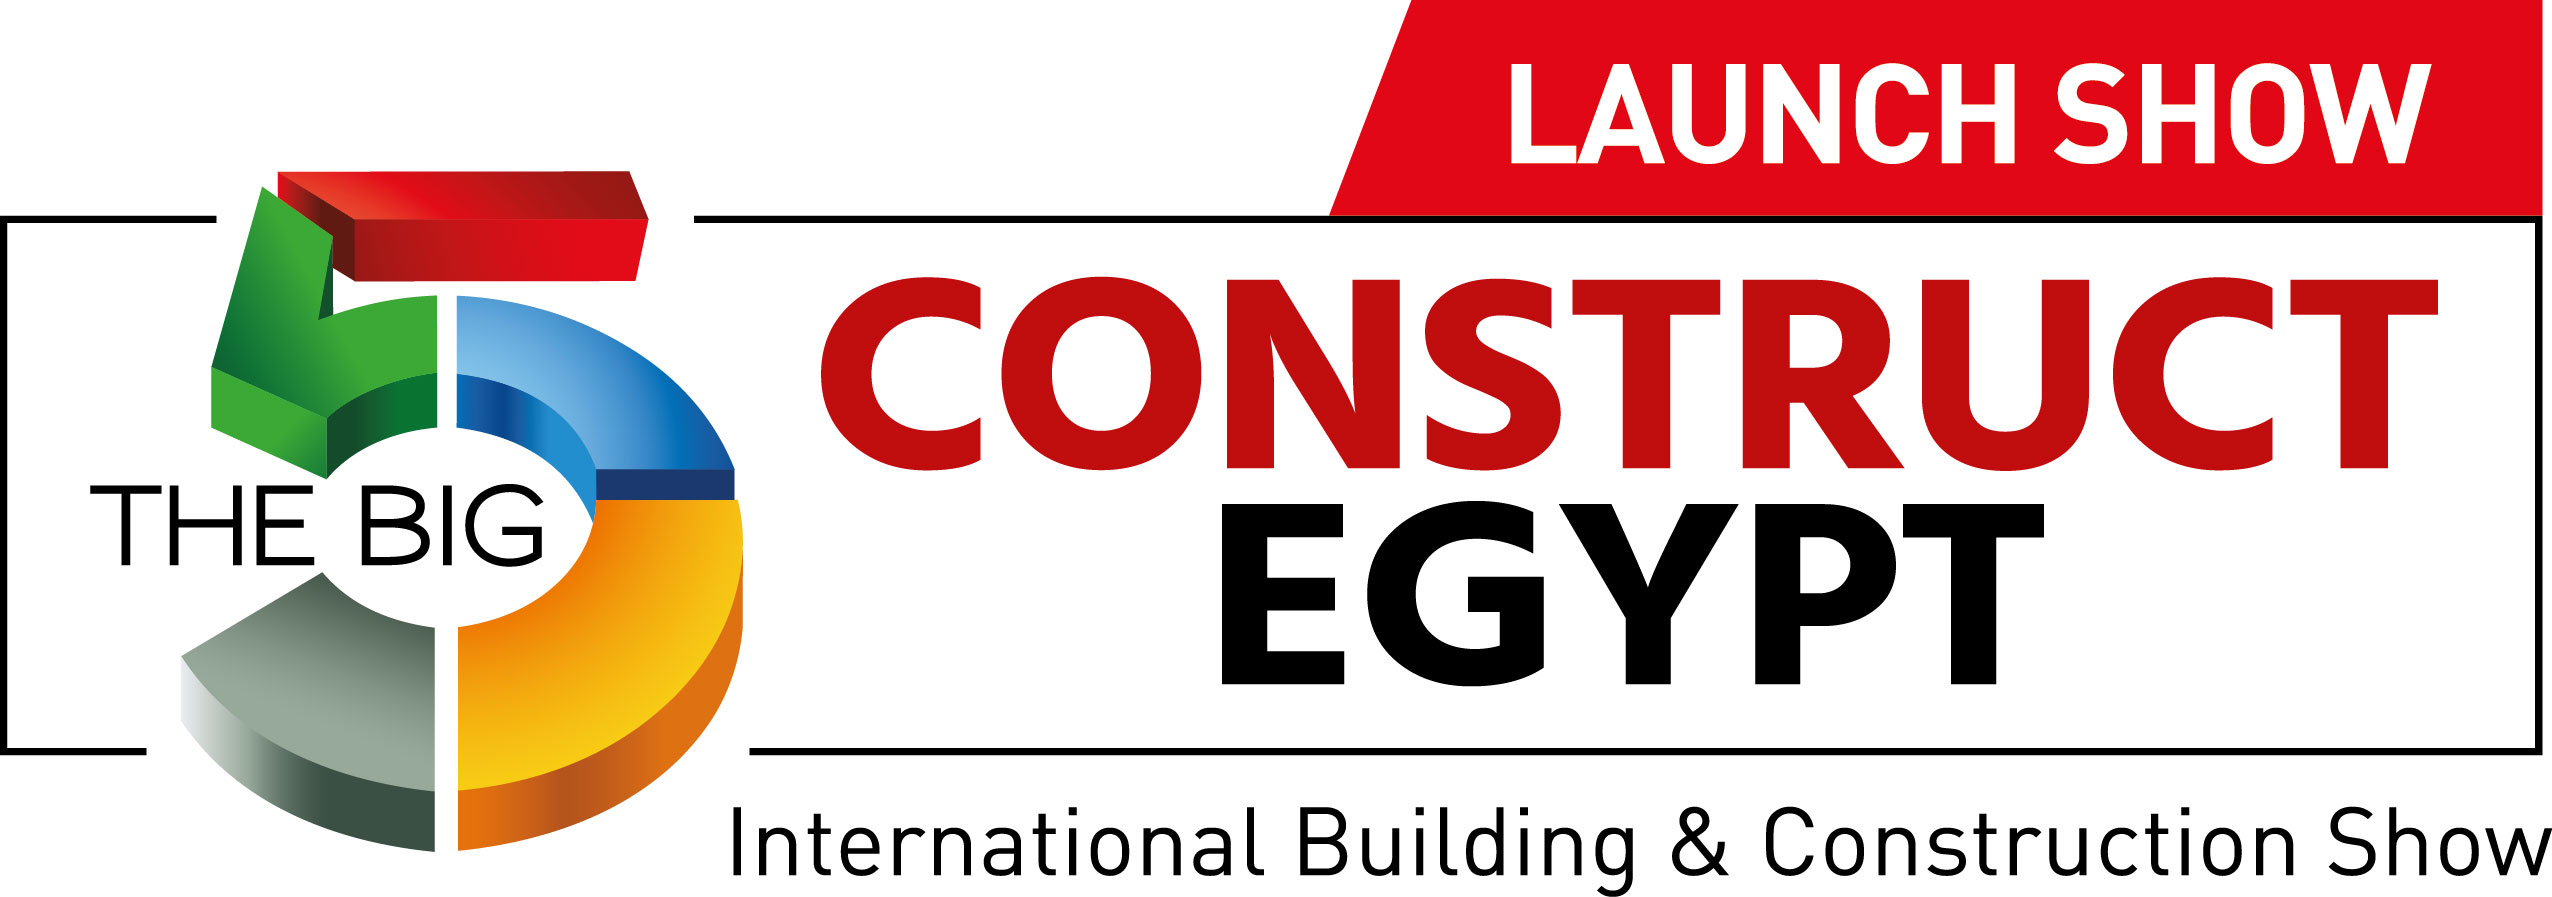 the-big-5-construct-egypt-icon